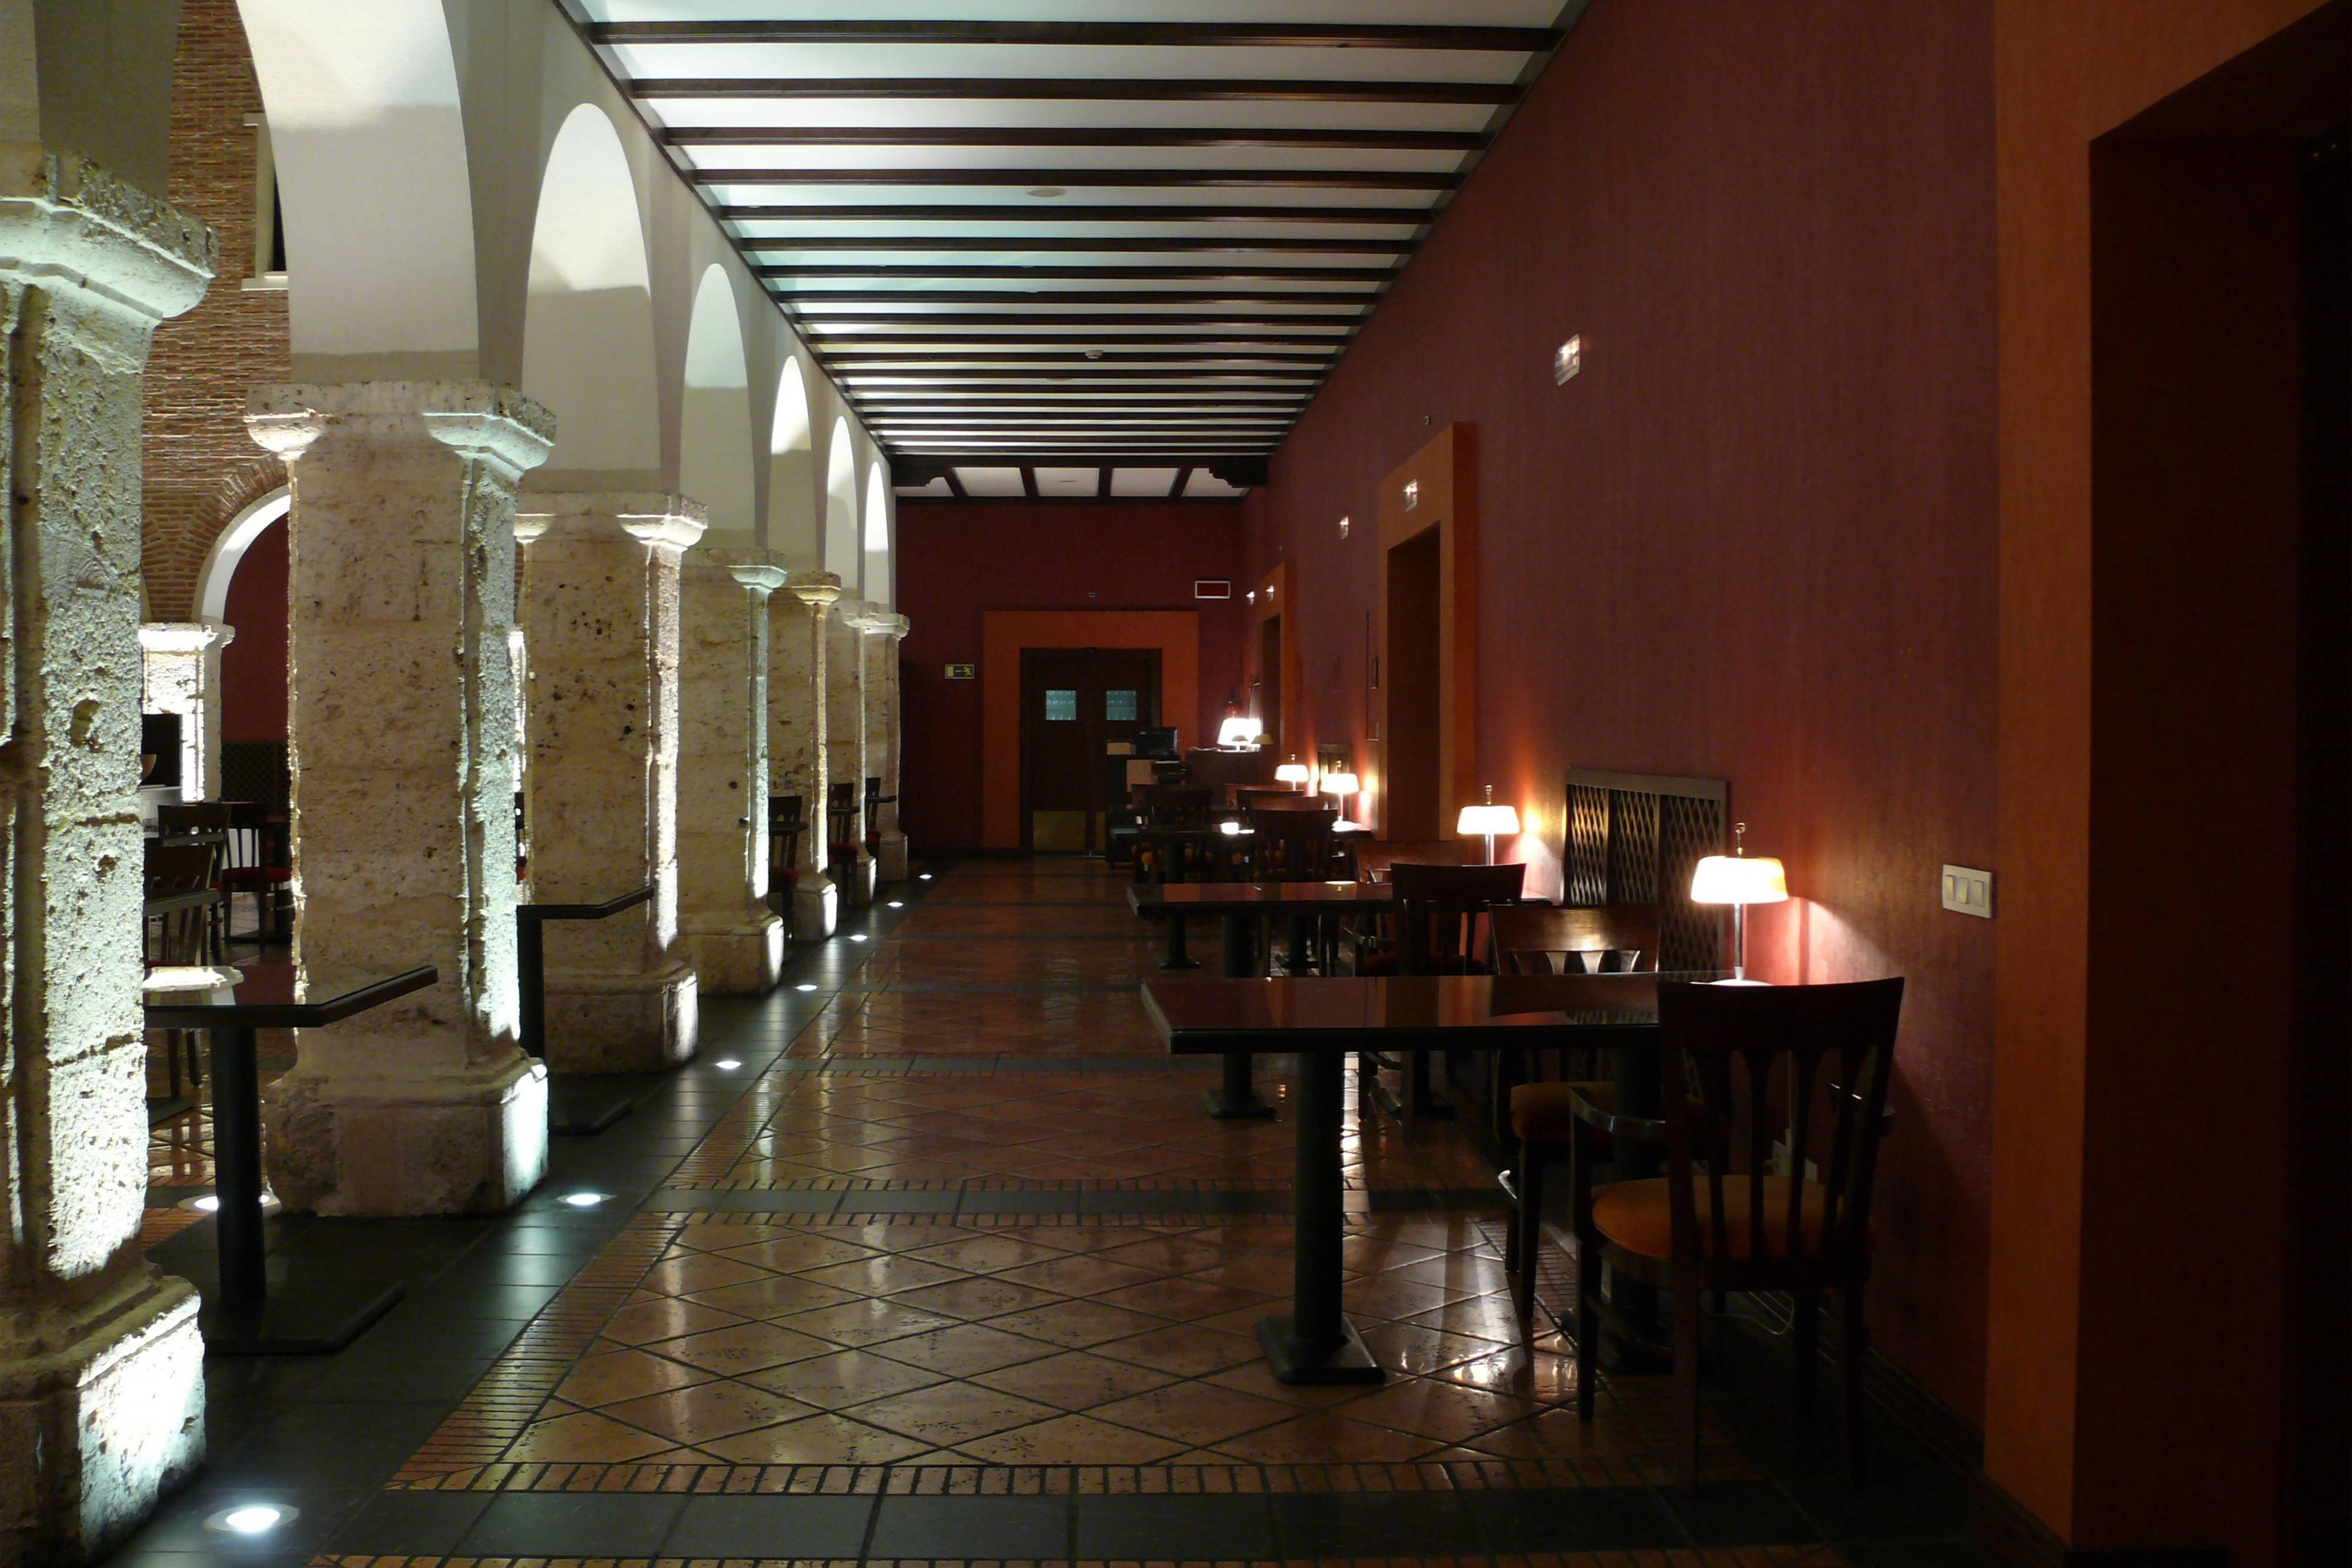 Hotel near Valladolid Spain